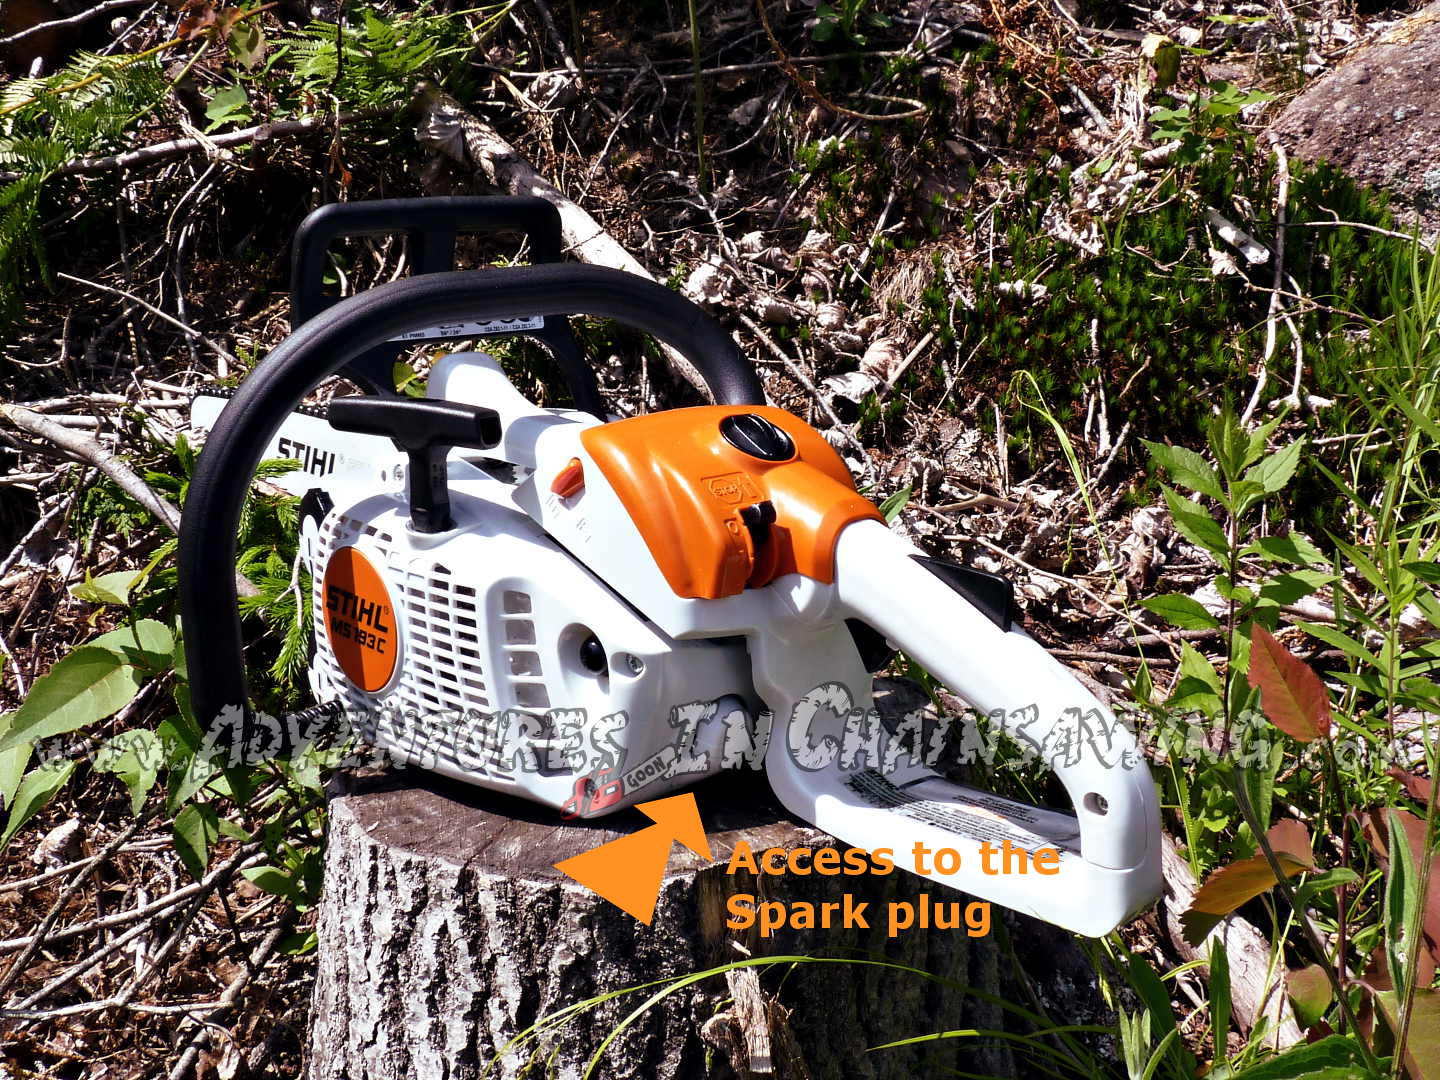 The adventure continues on the best chainsaw blog.